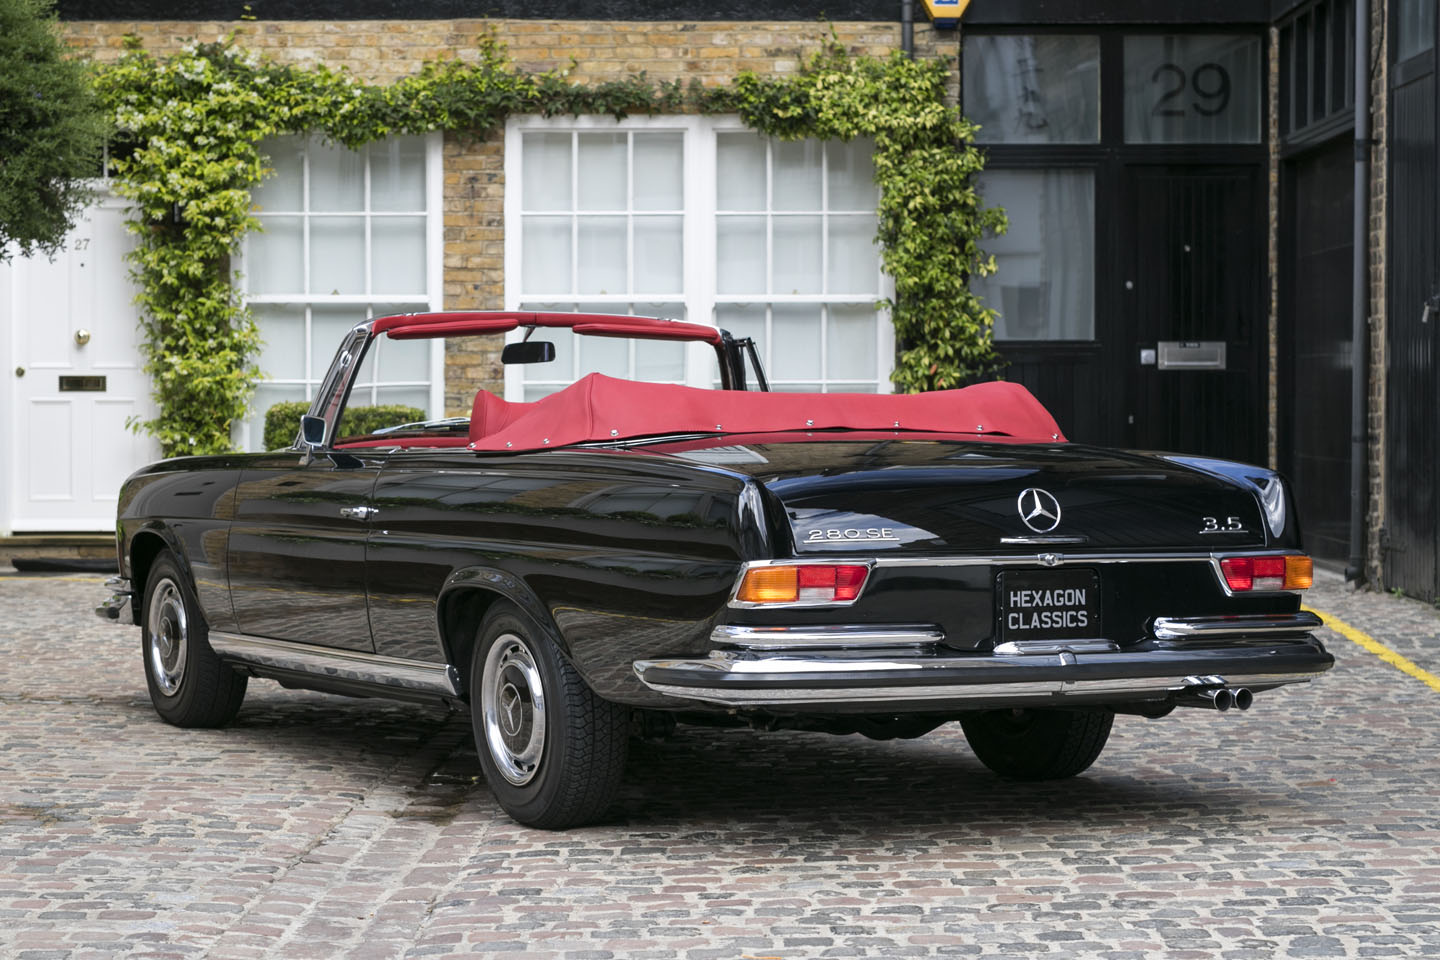 Extremely Rare Right Hand Drive 1970 Mercedes Benz 280 Cabriolet Goes On Sale At Hexagon